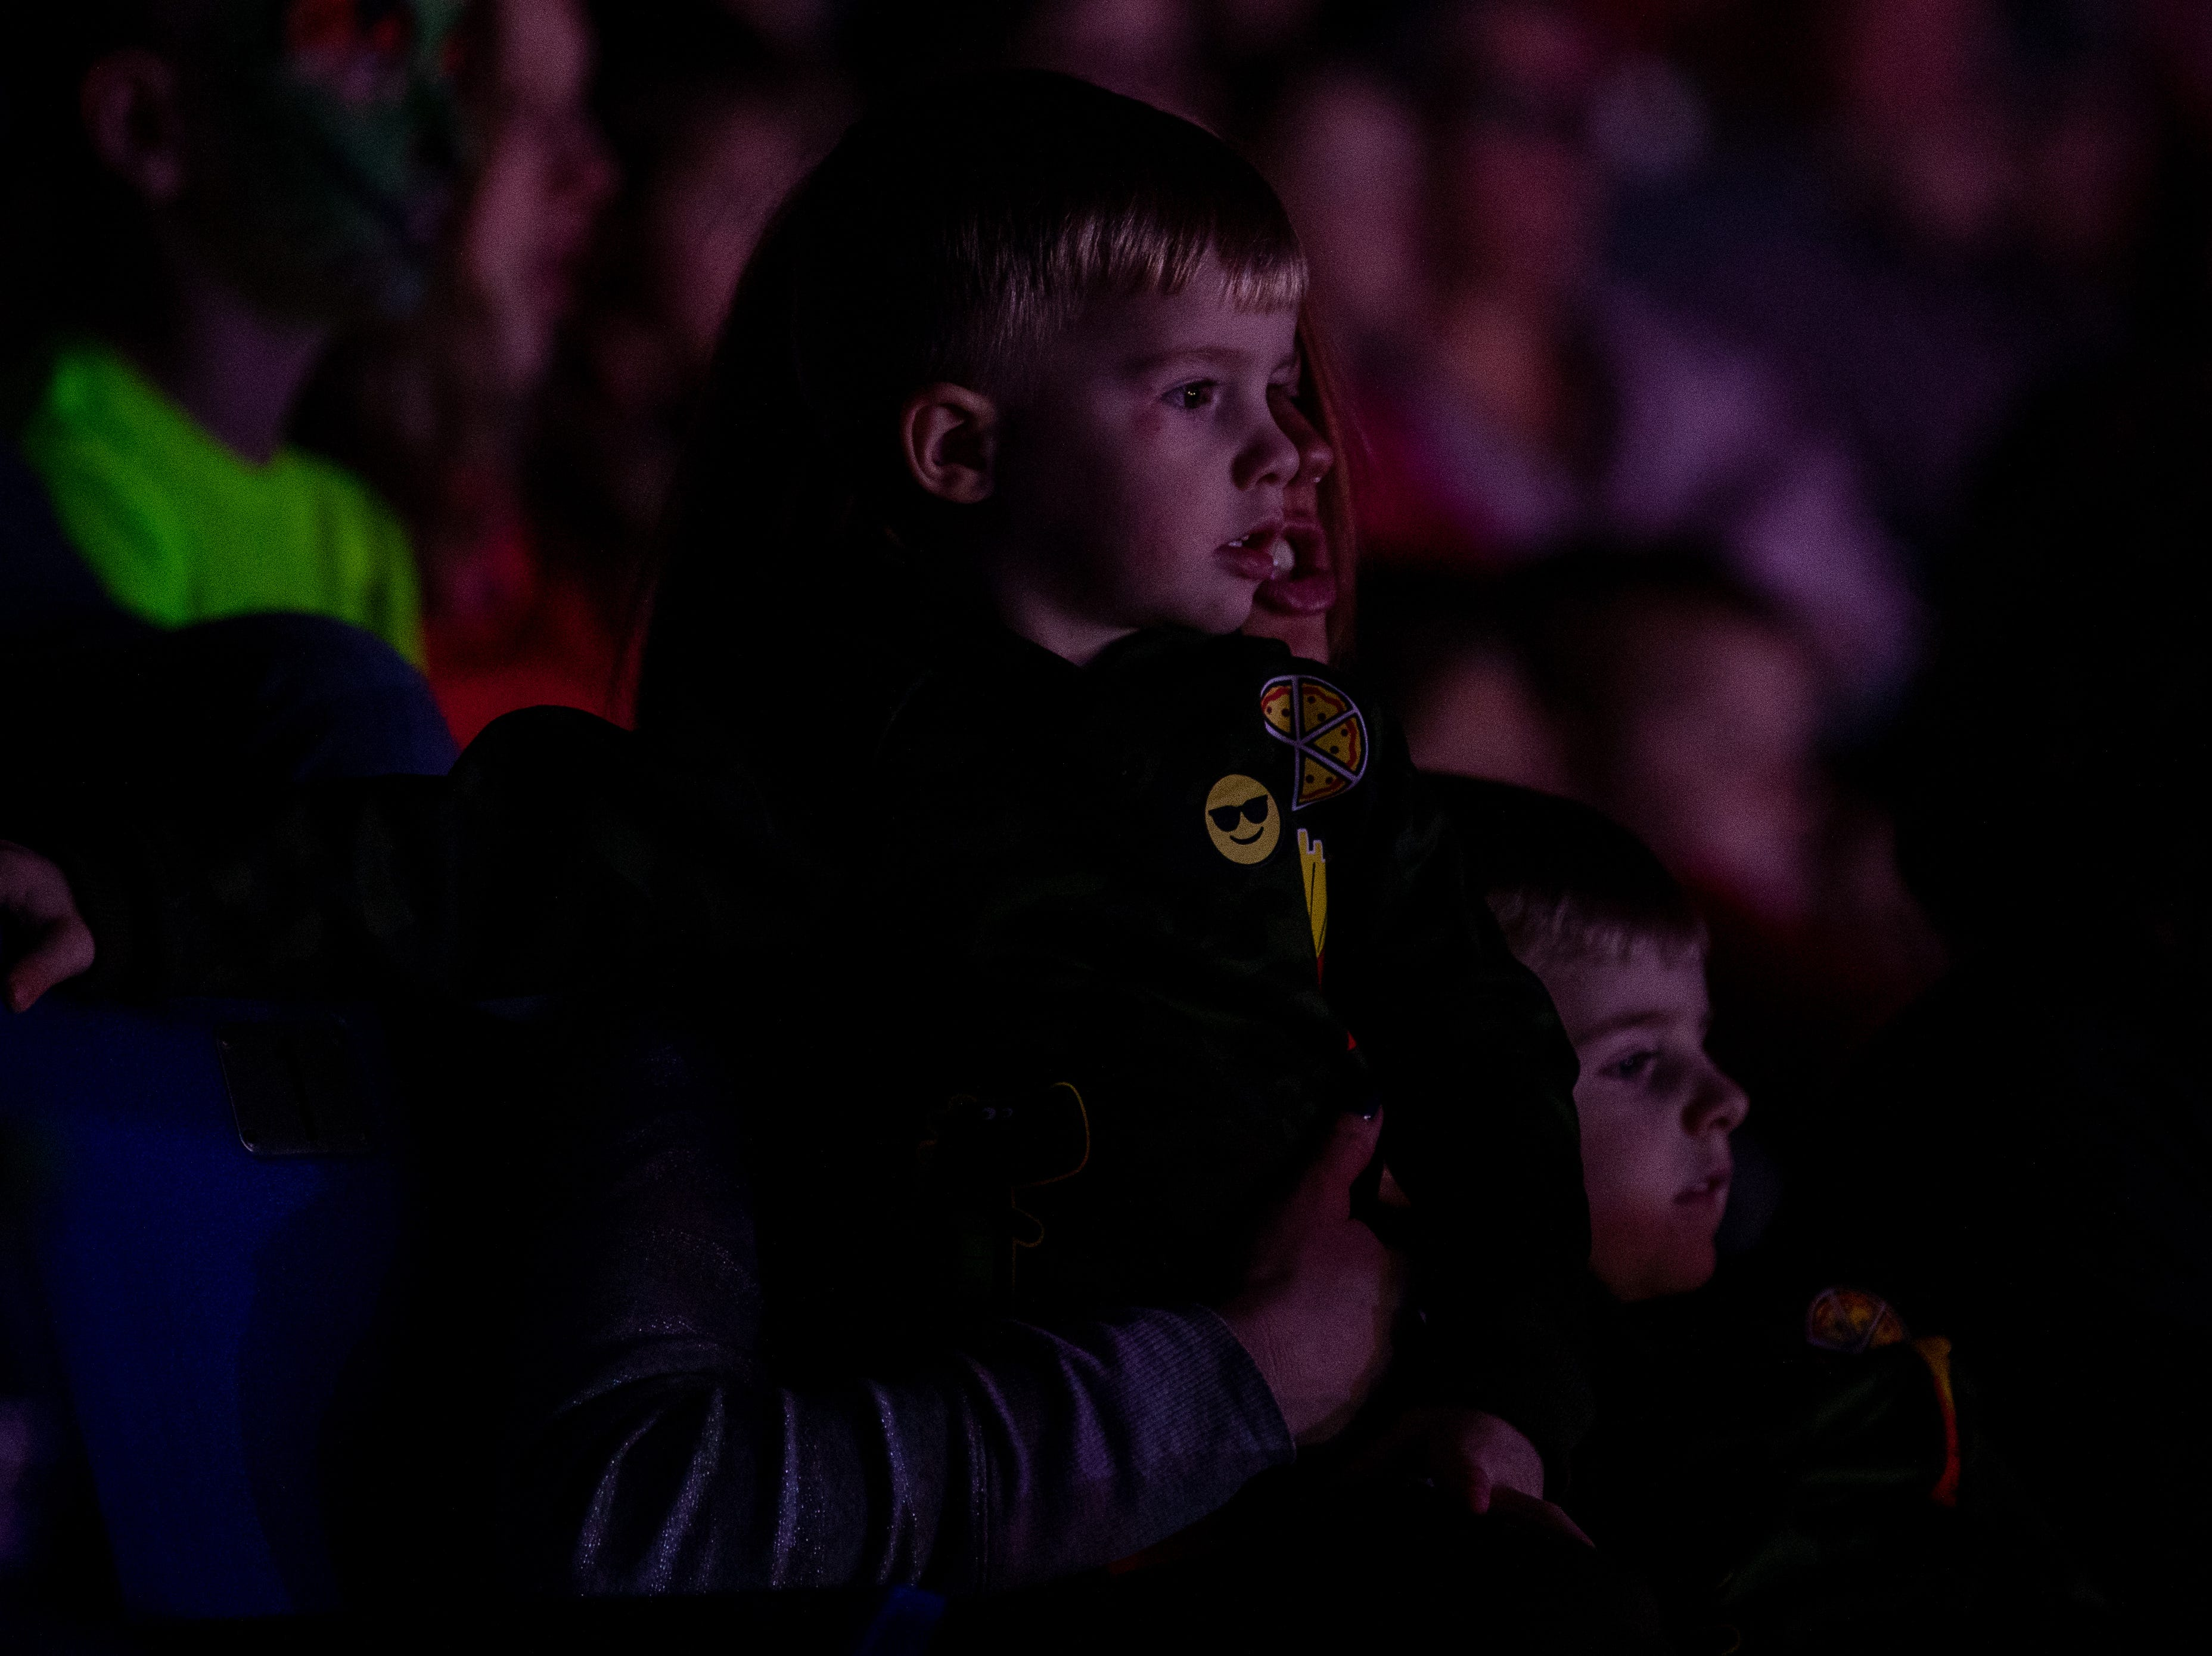 Focused on the performers spinning and flipping, a young boy is glued to the circus performance, Saturday, Feb. 9, 2019 in Louisville Ky.